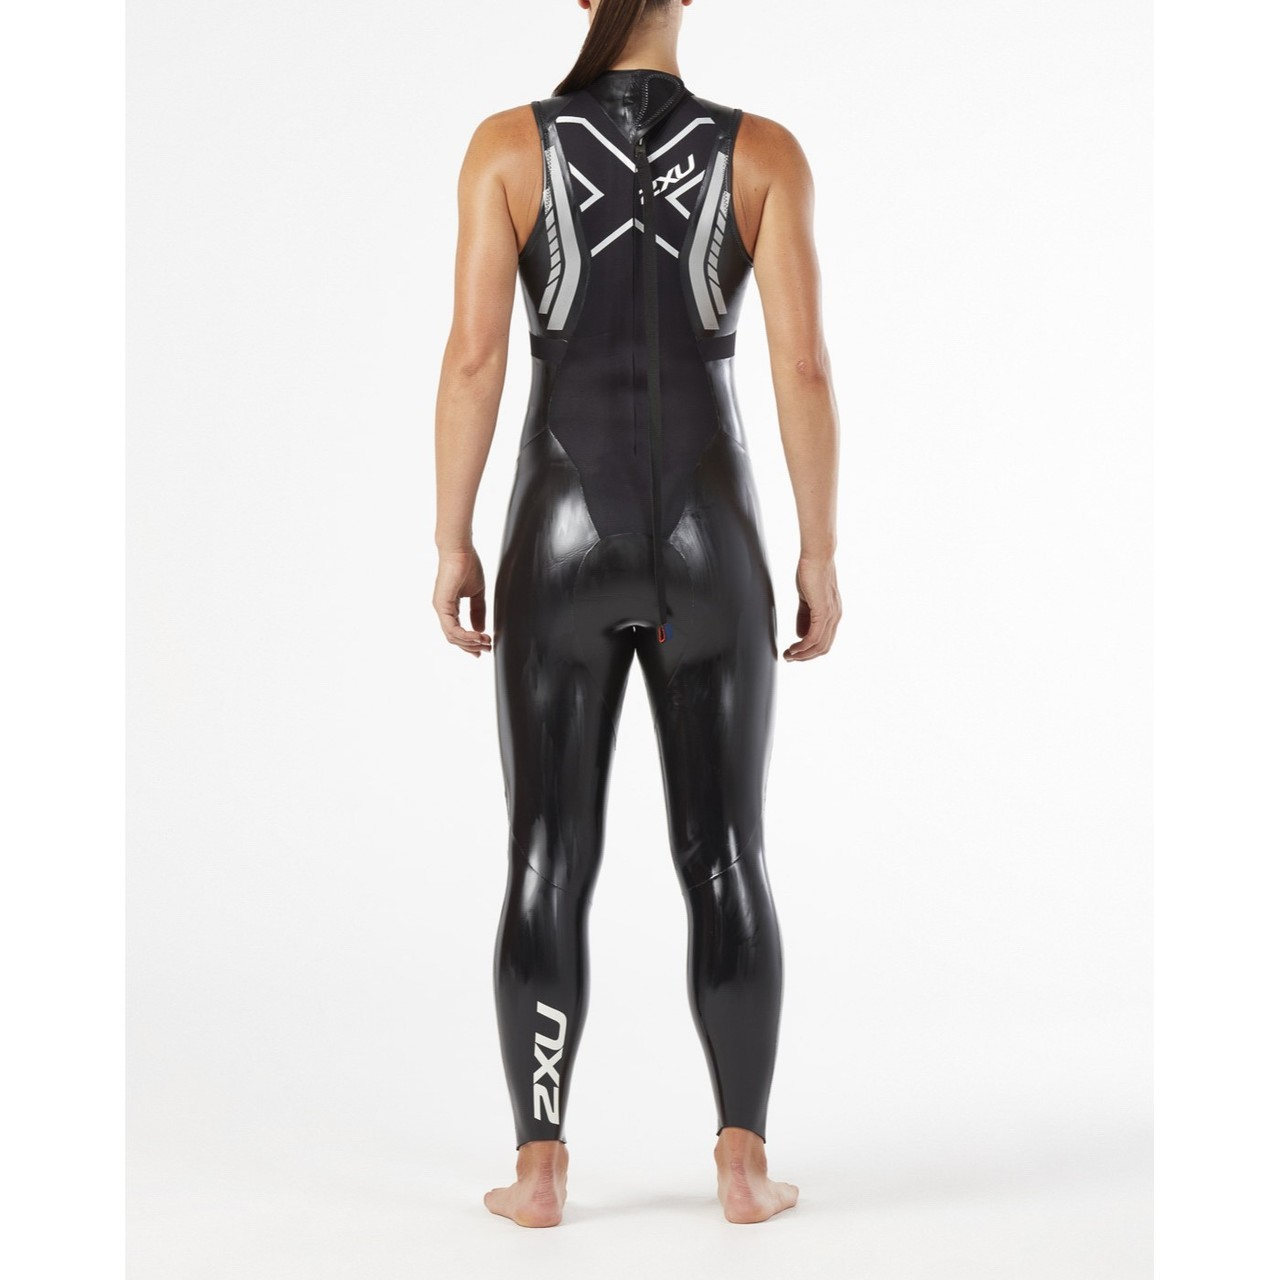 MUTA 2XU WOMEN'S P1 PROPEL SLEEVELESS WETSUIT WW4995c BACK.jpg